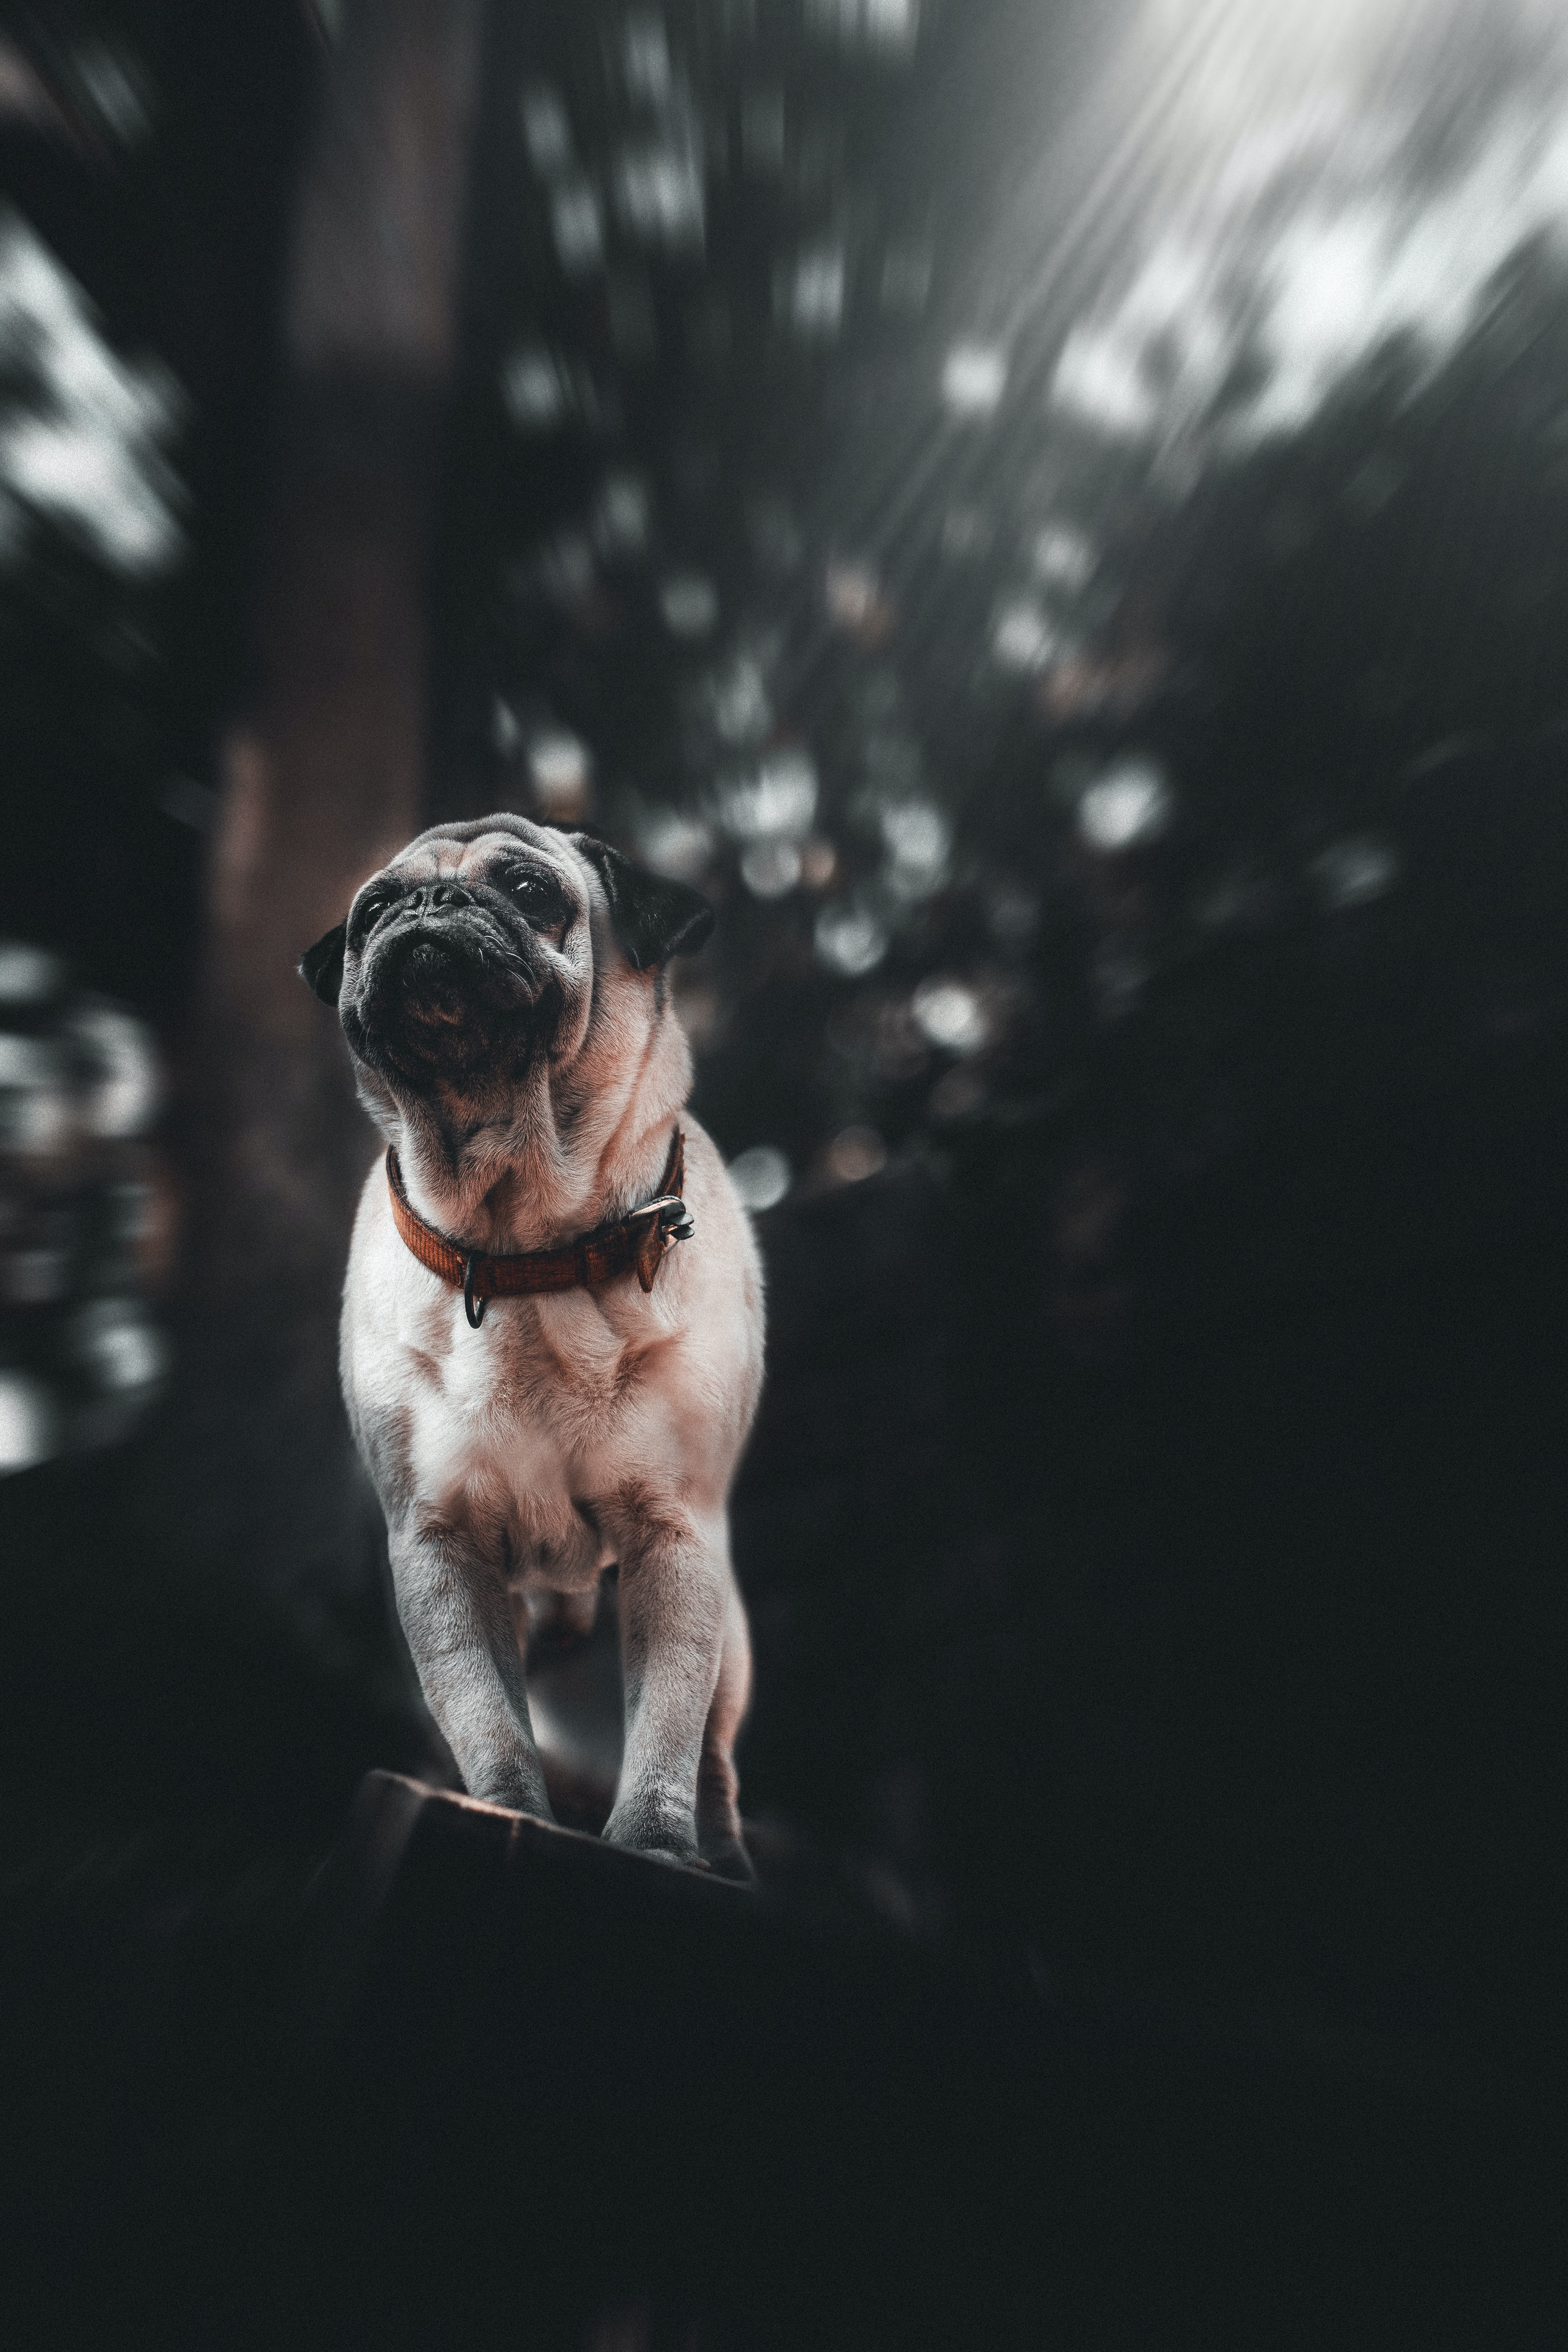 61704 download wallpaper Animals, Pug, Puppy, Dog, Pet, Sight, Opinion screensavers and pictures for free